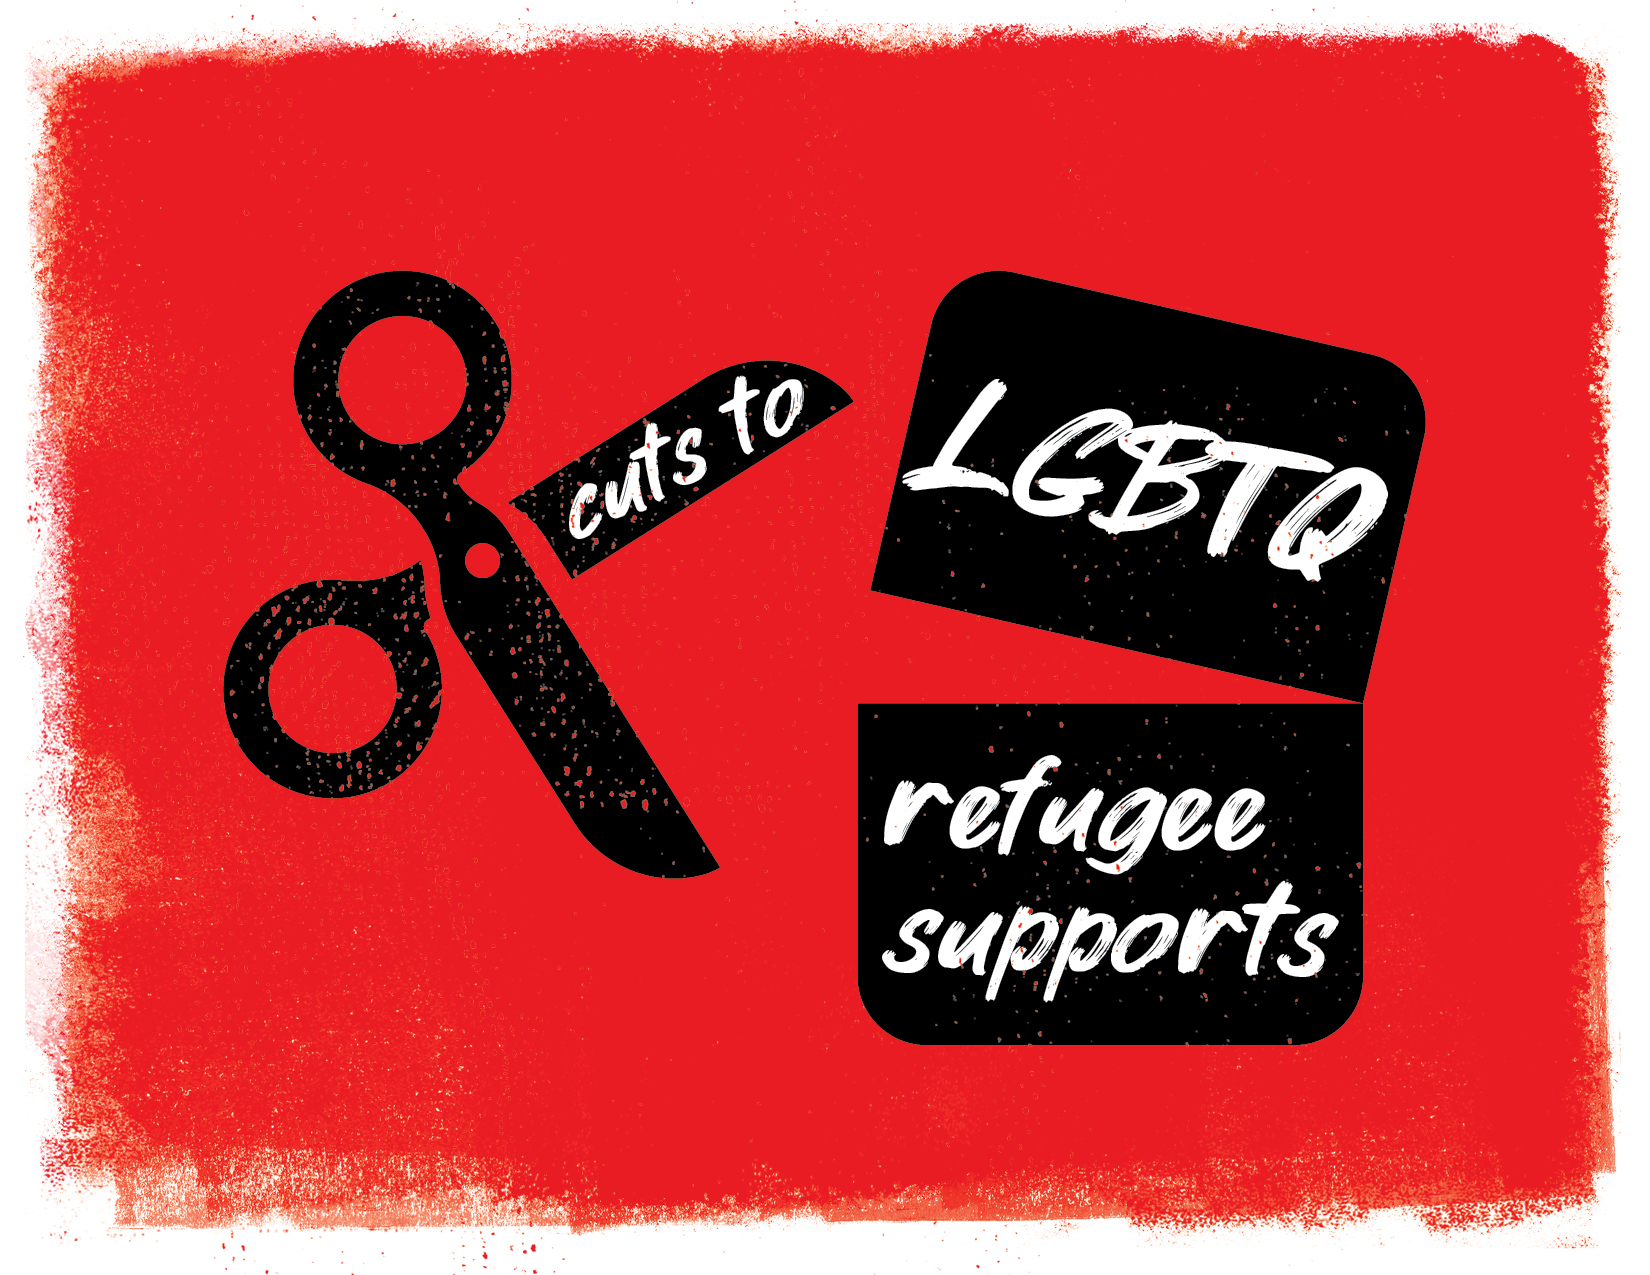 Cuts to LGBTQ refugee supports. Illustration of scissors cutting a paper in half. red background.